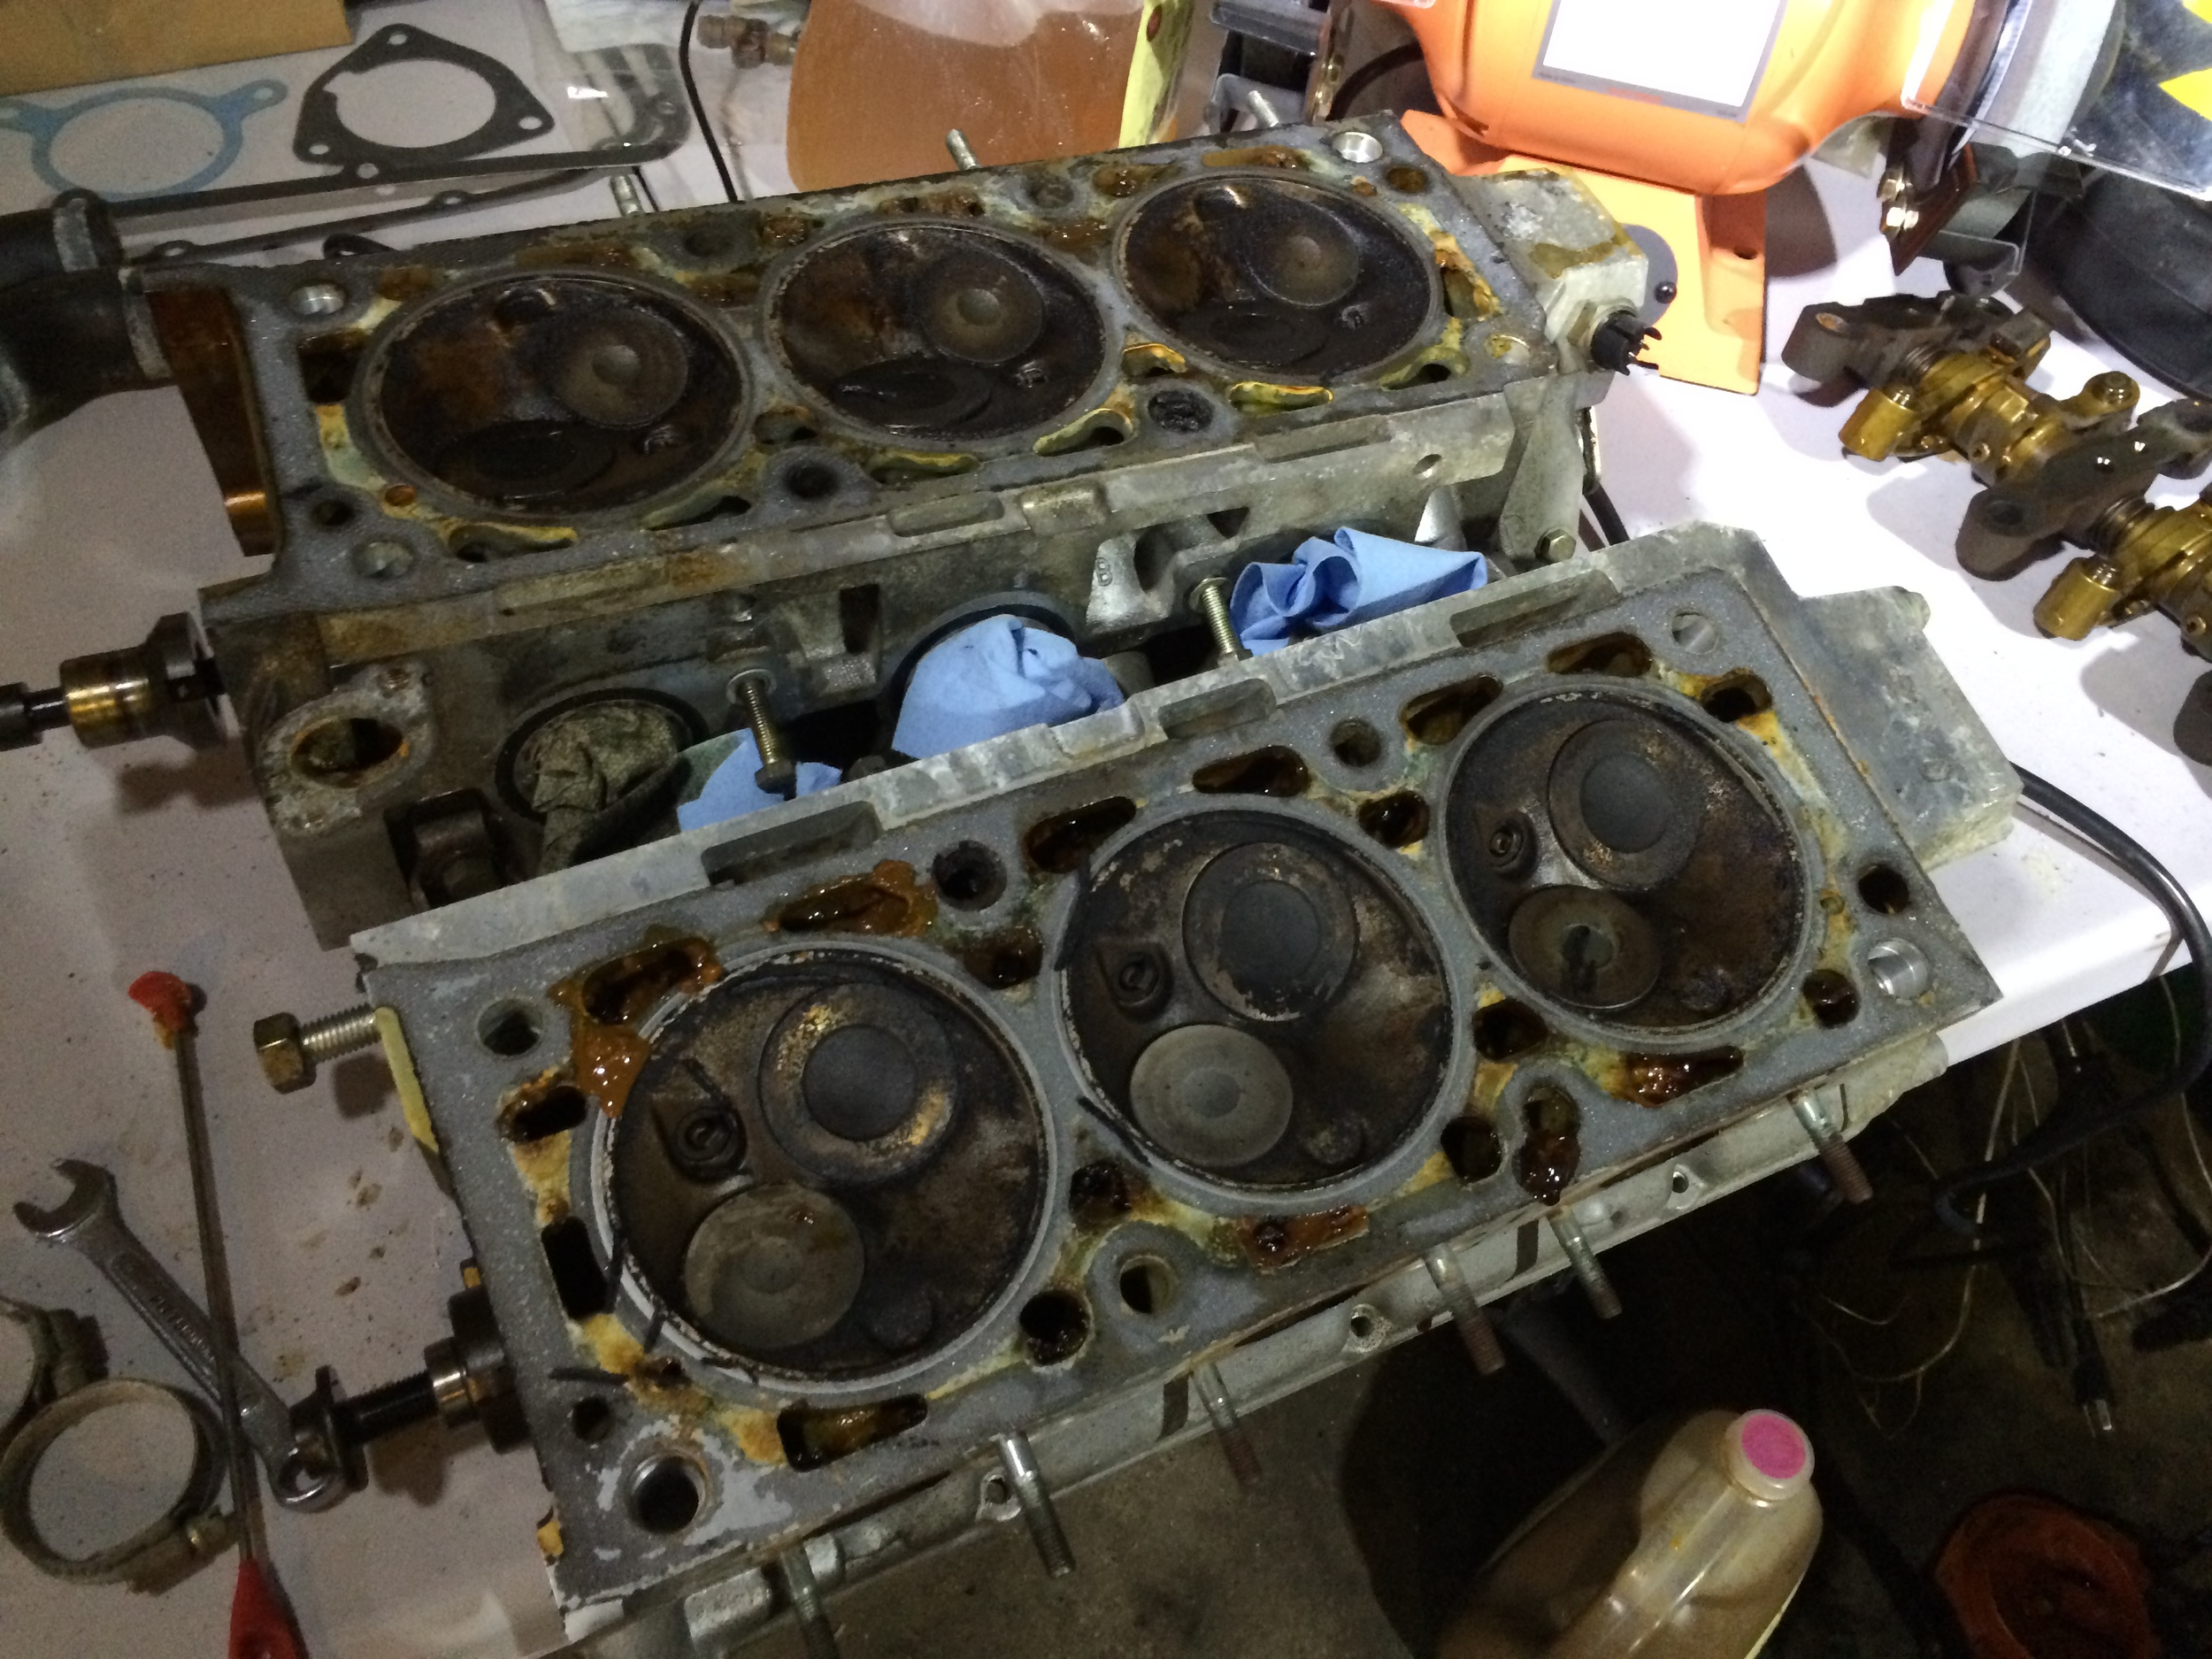 Dirty cylinder heads. Notice the oil plugging the passages in both heads.